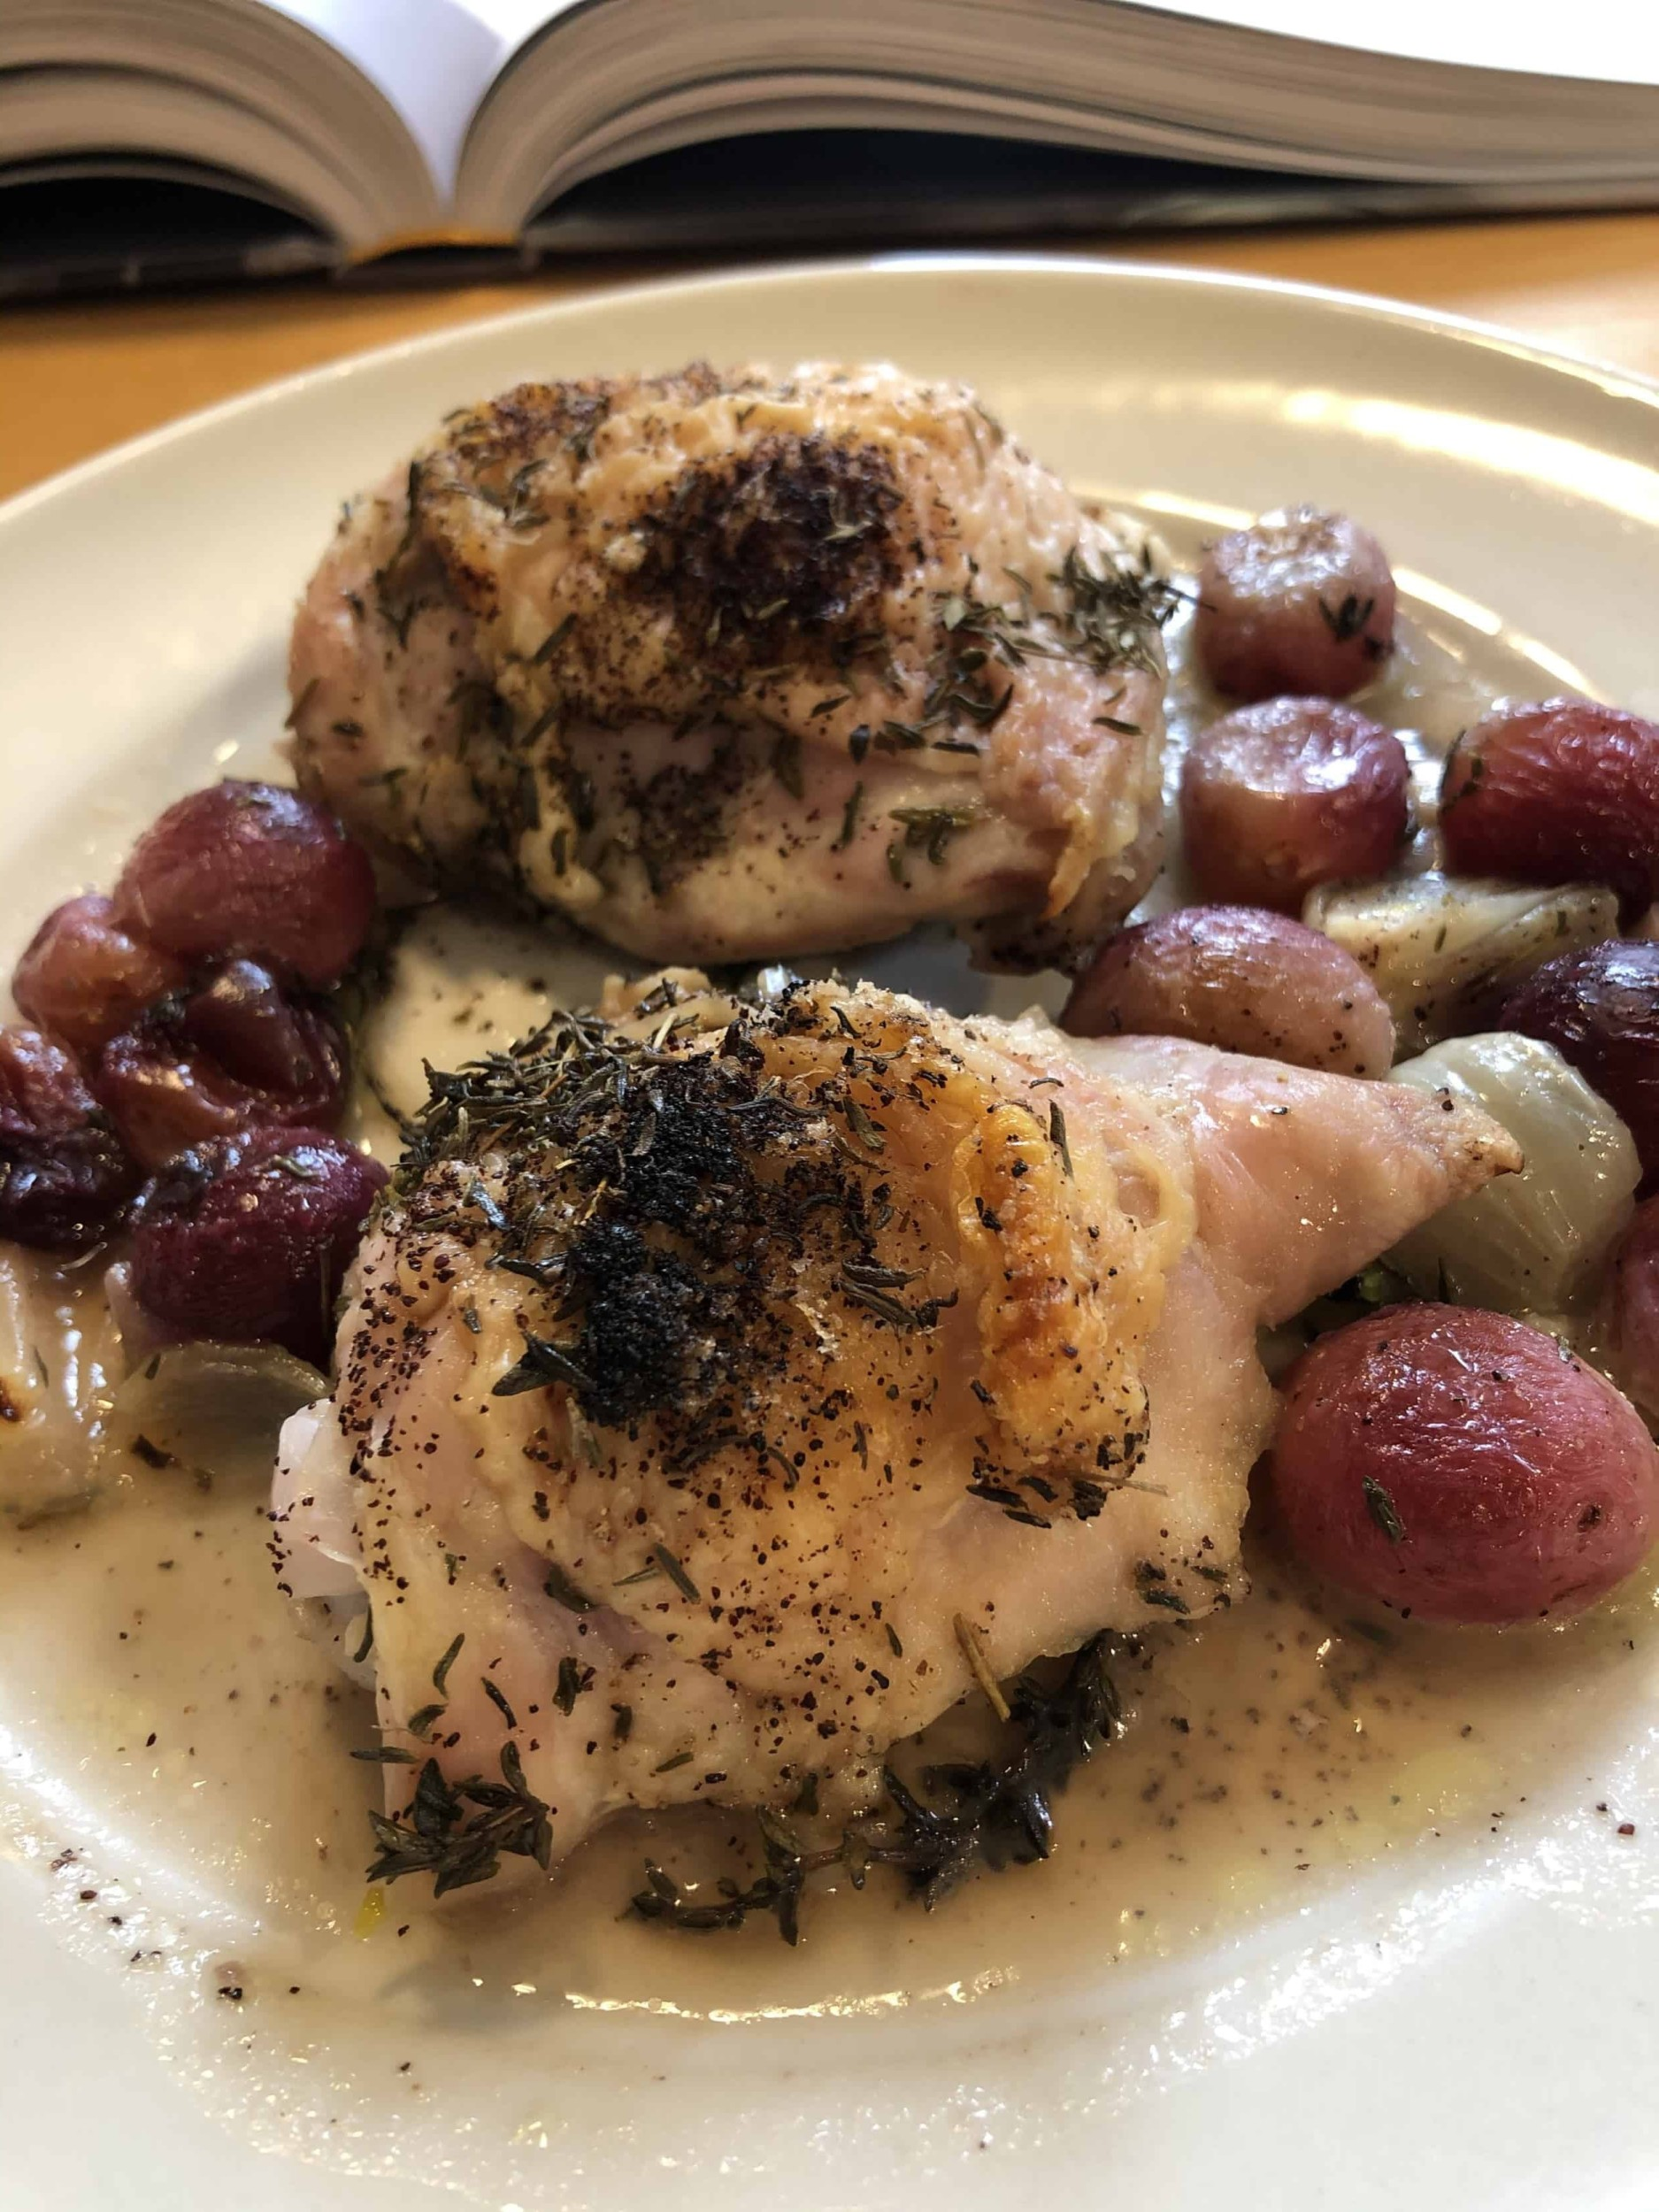 Sheet-Pan Chicken with Shallots and Grapes